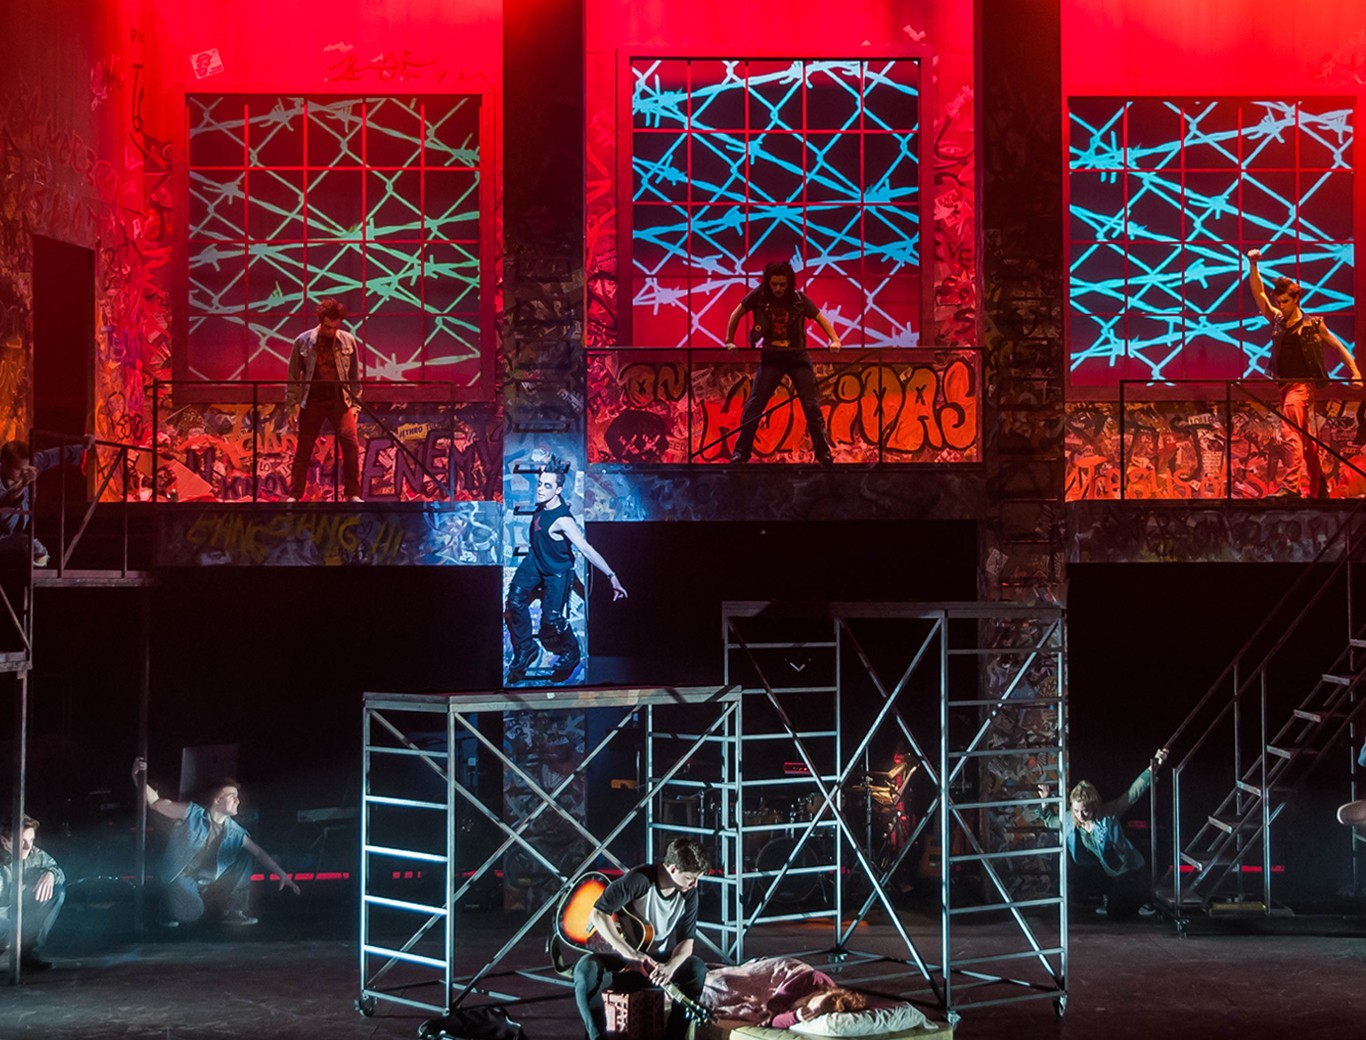 Penn State's School of Theatre production of American Idiot, the musical inspired by Green Day's seventh album of the same name, at the Playhouse Theatre.